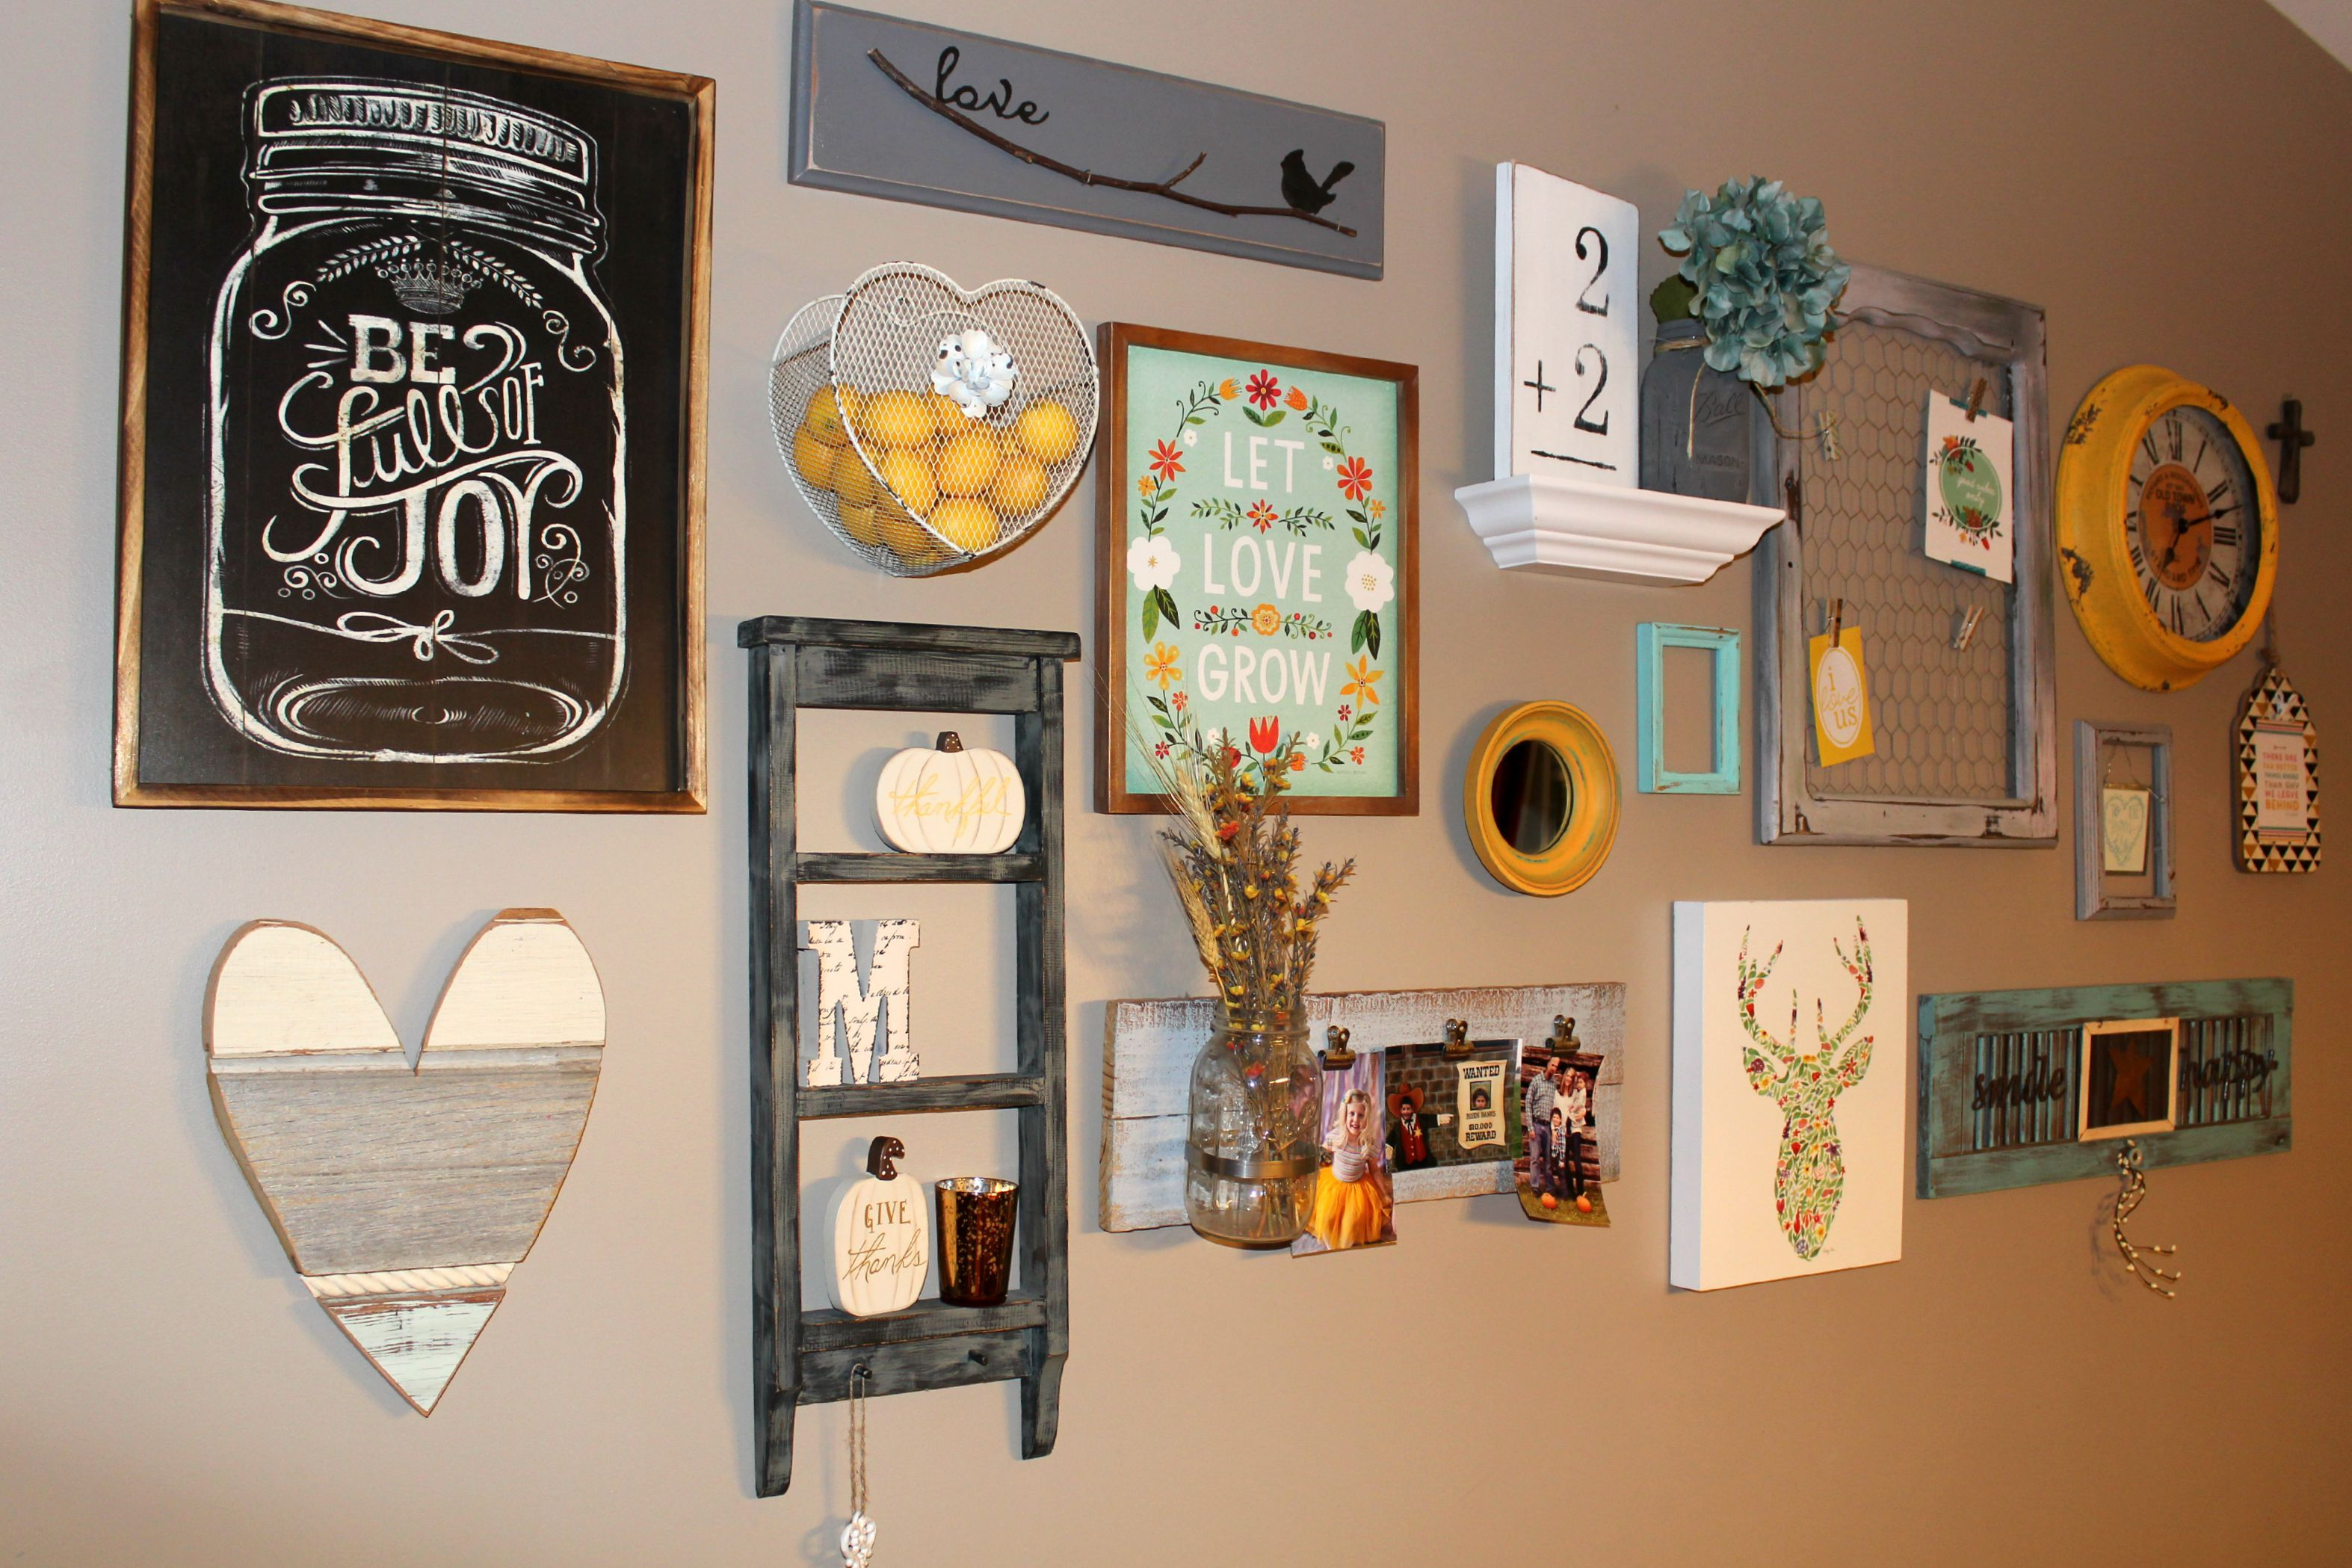 rustic glam gallery wall gallery wall walls and galleries rustic glam gallery wall by ellery designs